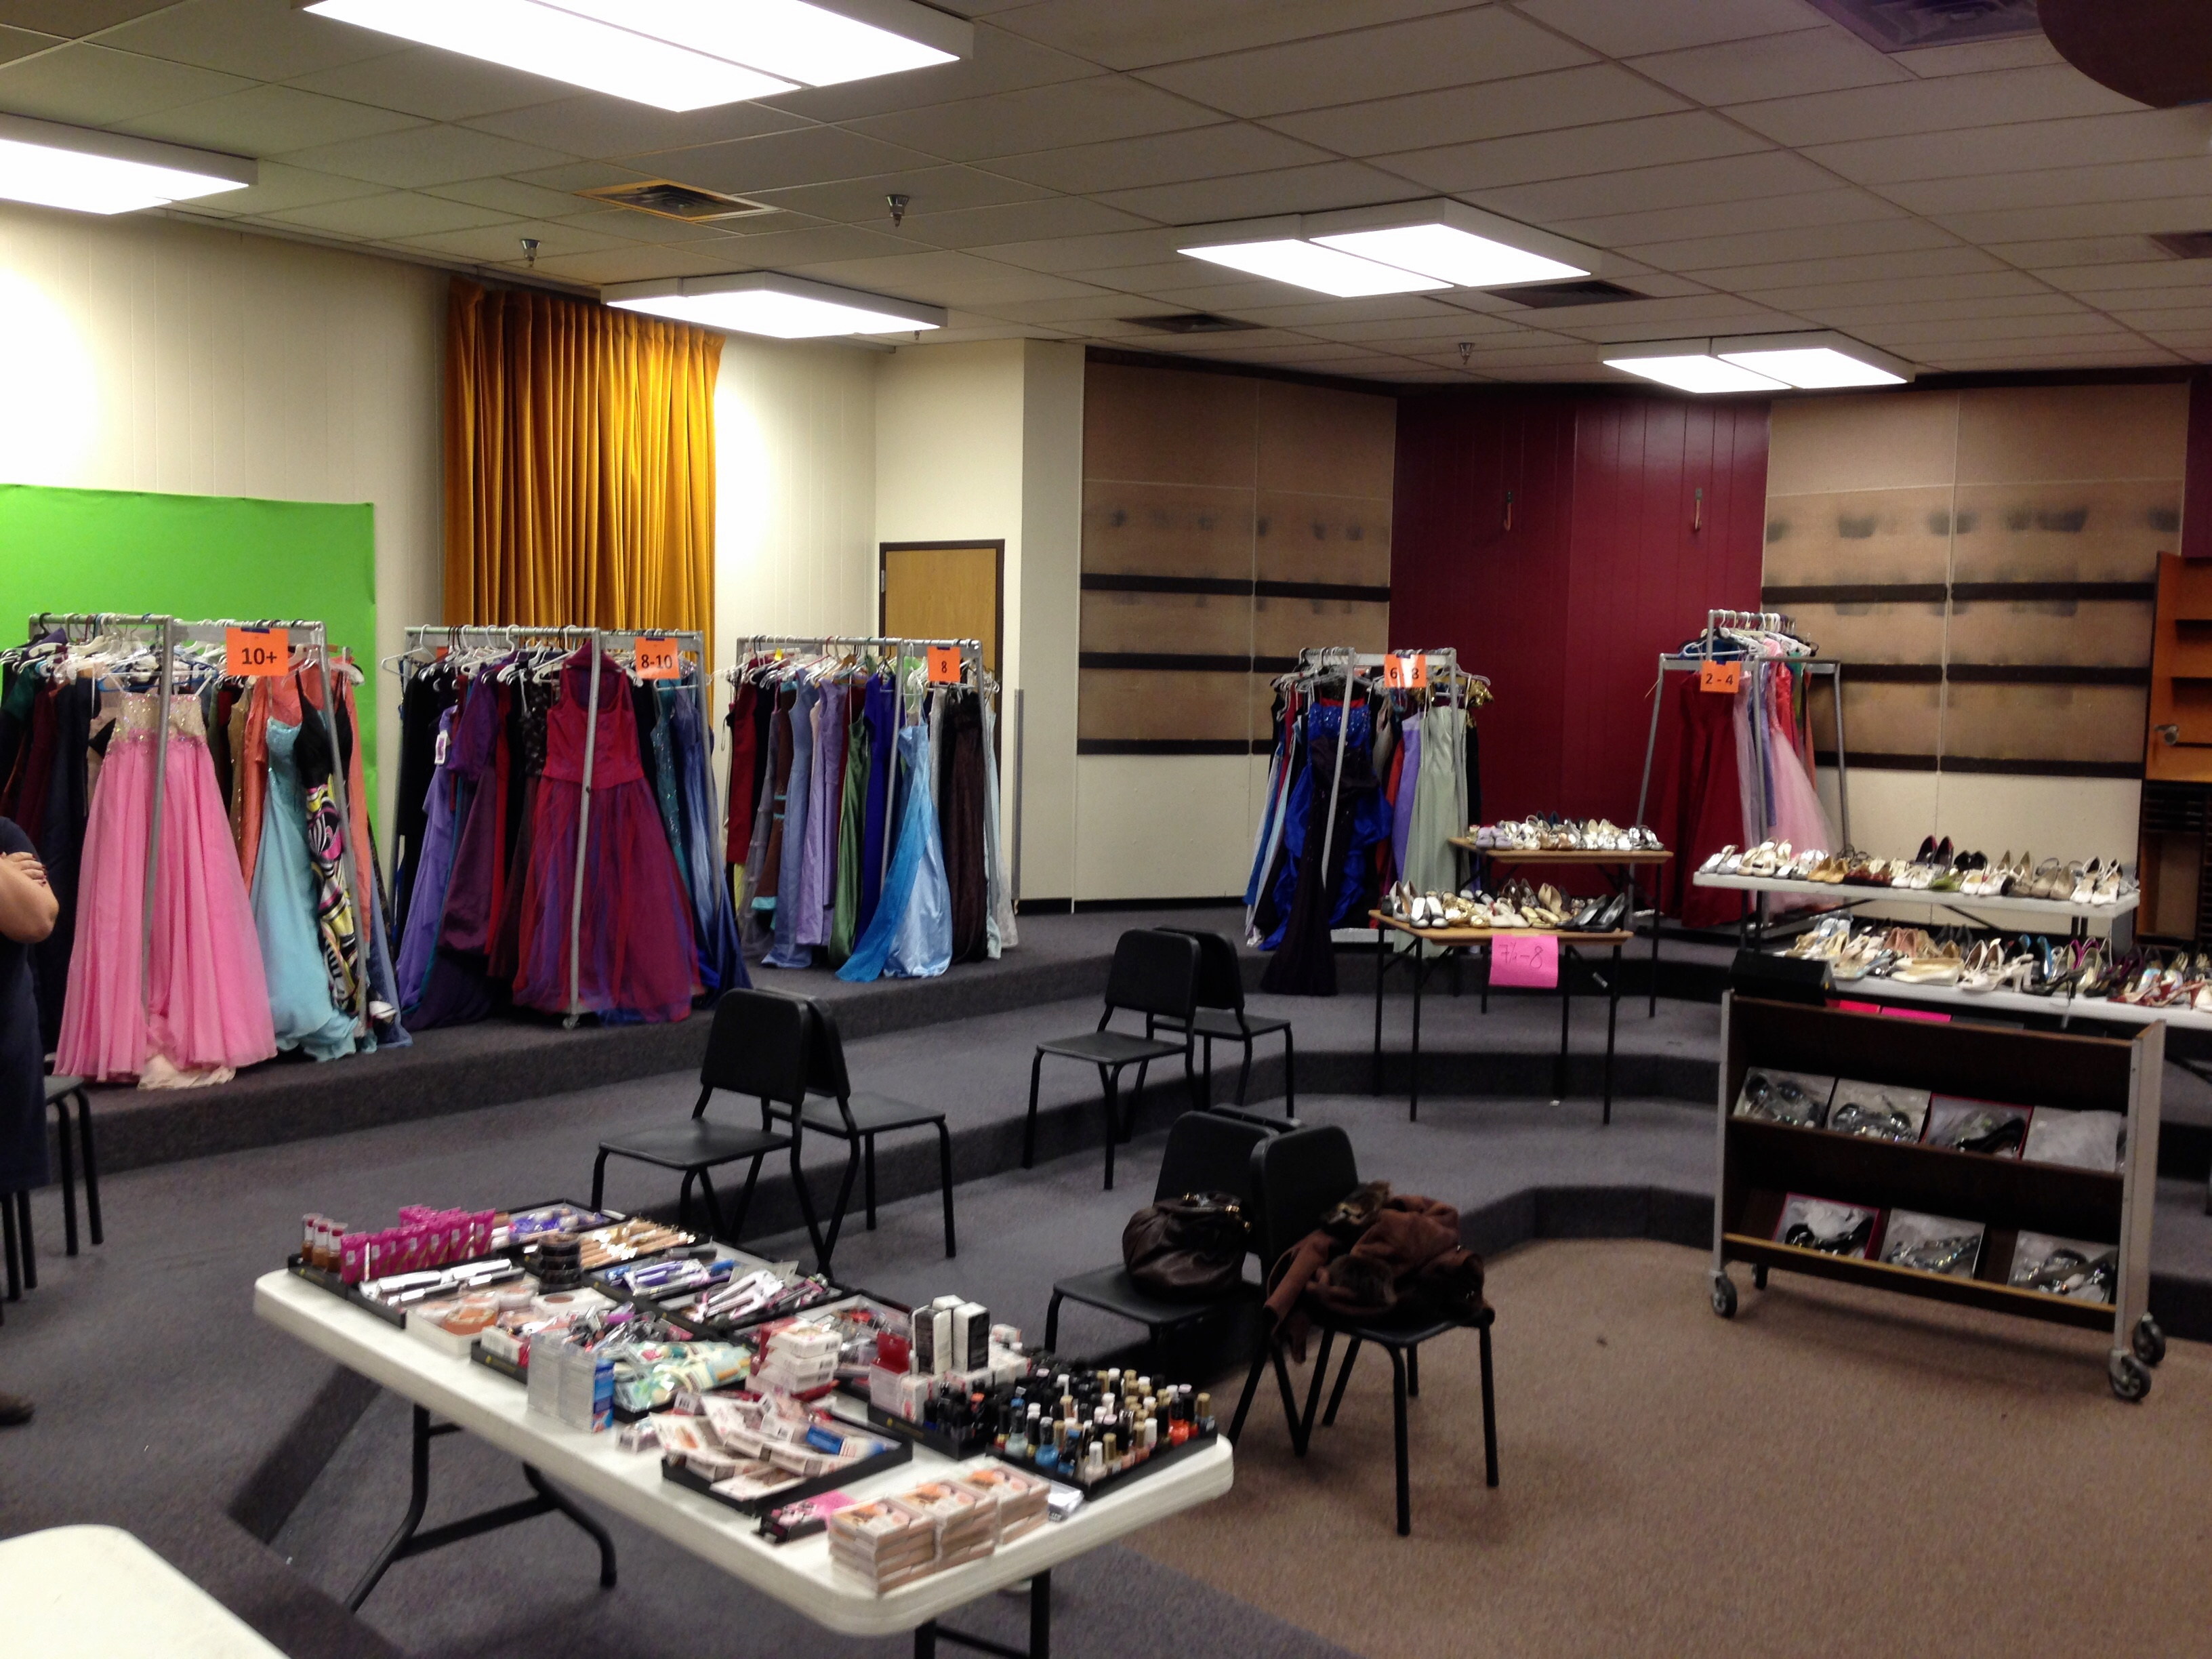 Cinderella S Closet Is Open For Prom Shopping Kpbsd